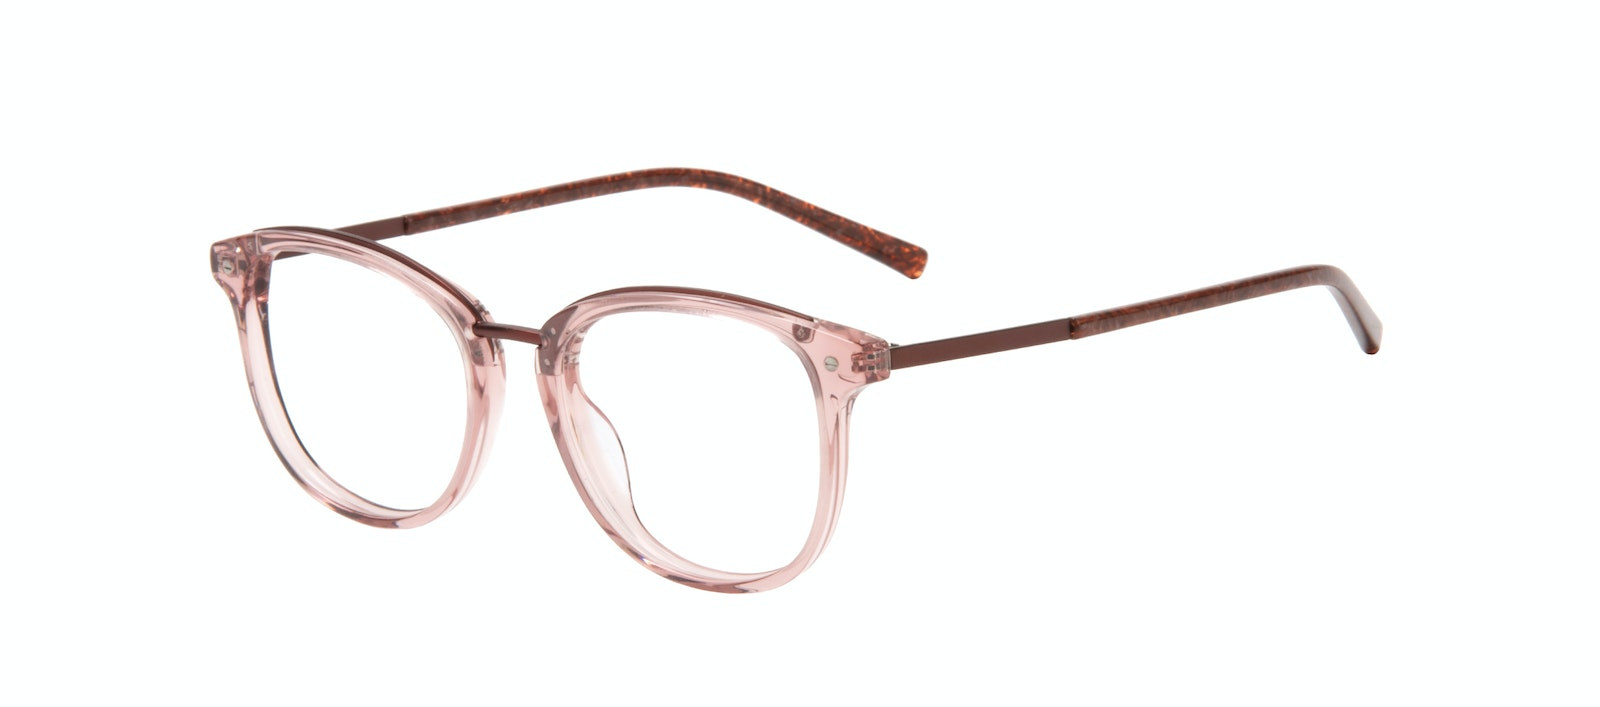 Affordable Fashion Glasses Square Eyeglasses Women Bella Petite Rose Tilt